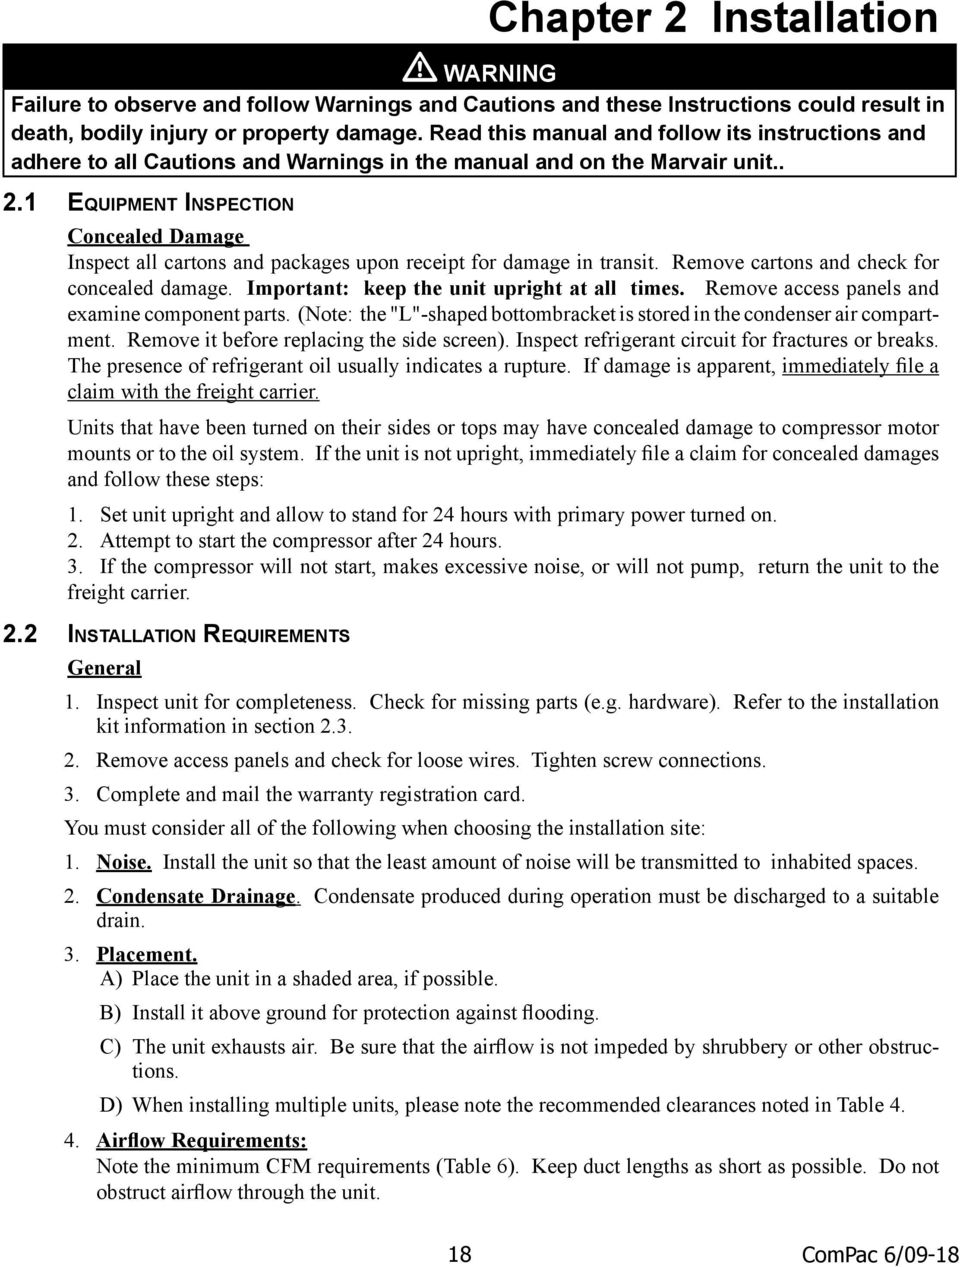 compac i and compac ii air conditioner product manual pdf remove it before replacing the side screen inspect refrigerant circuit for fractures or breaks